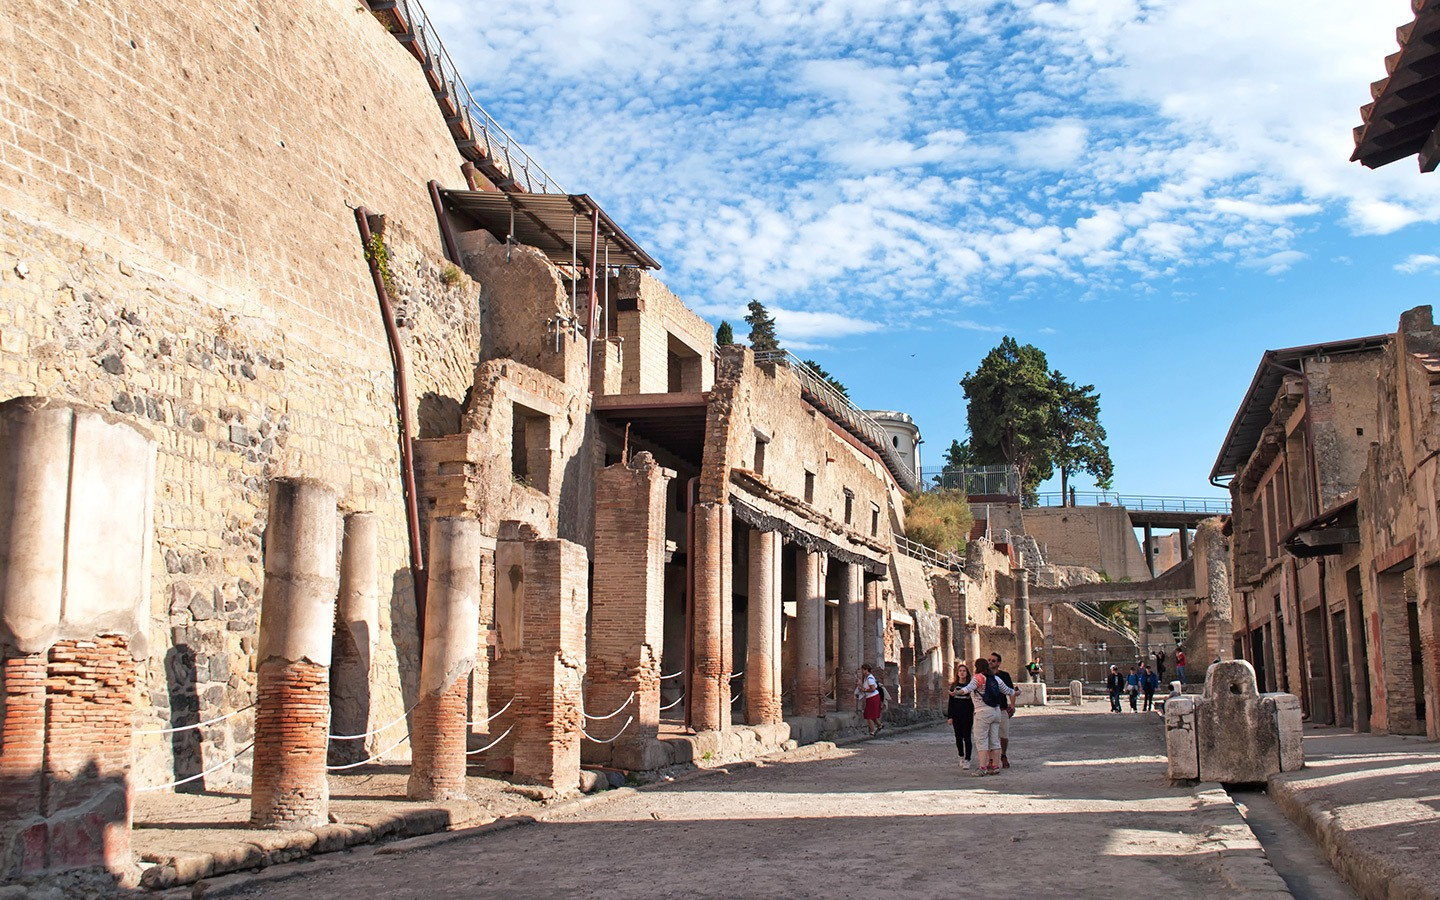 Roman city of Herculaneum, Italy